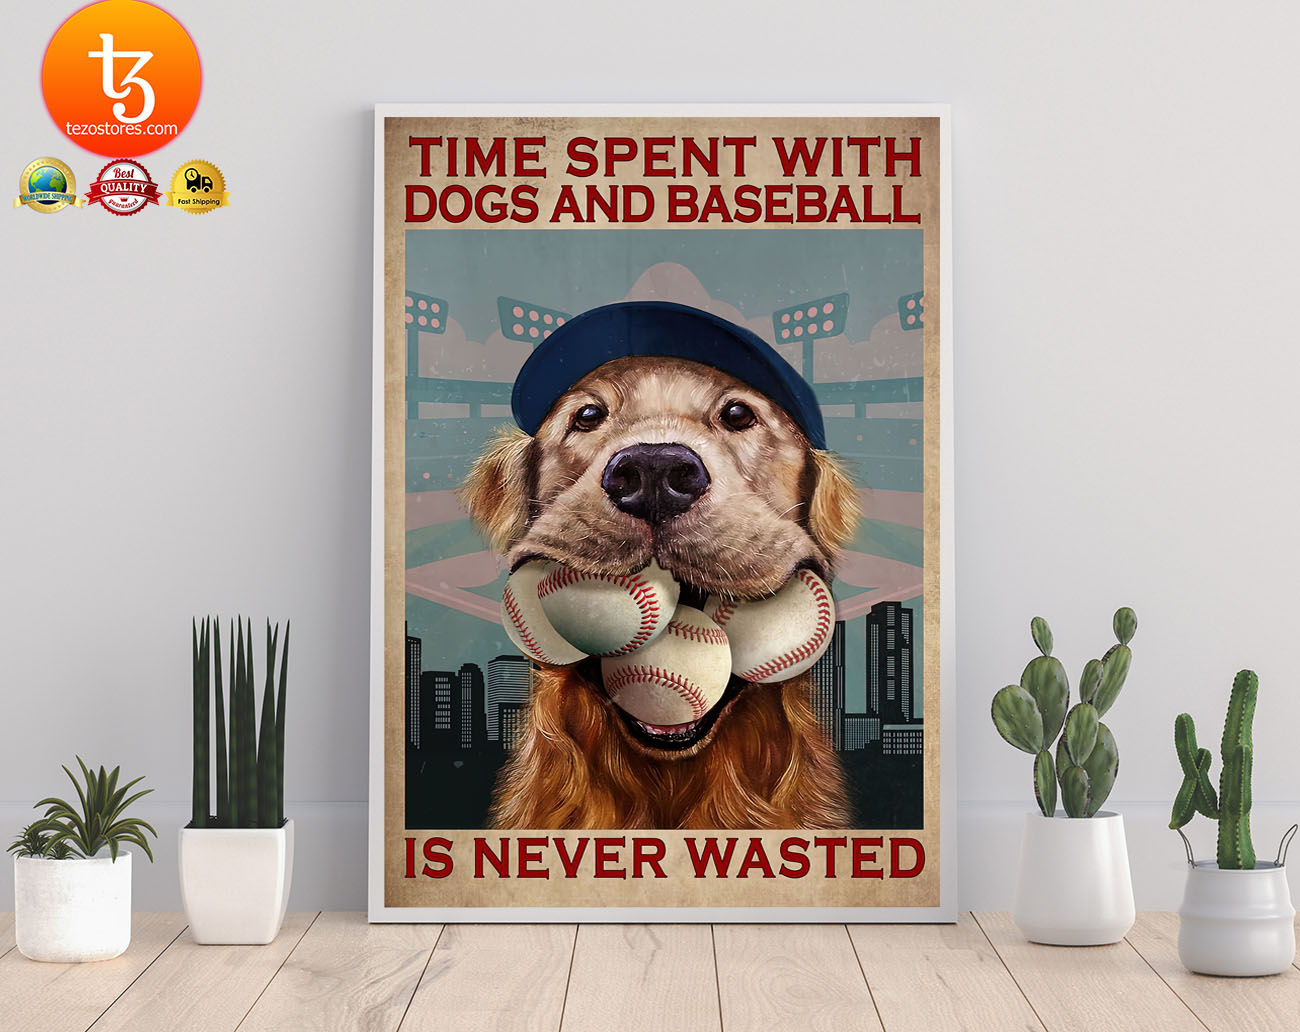 Dog time spent with dogs and baseball is never wasted poster 22